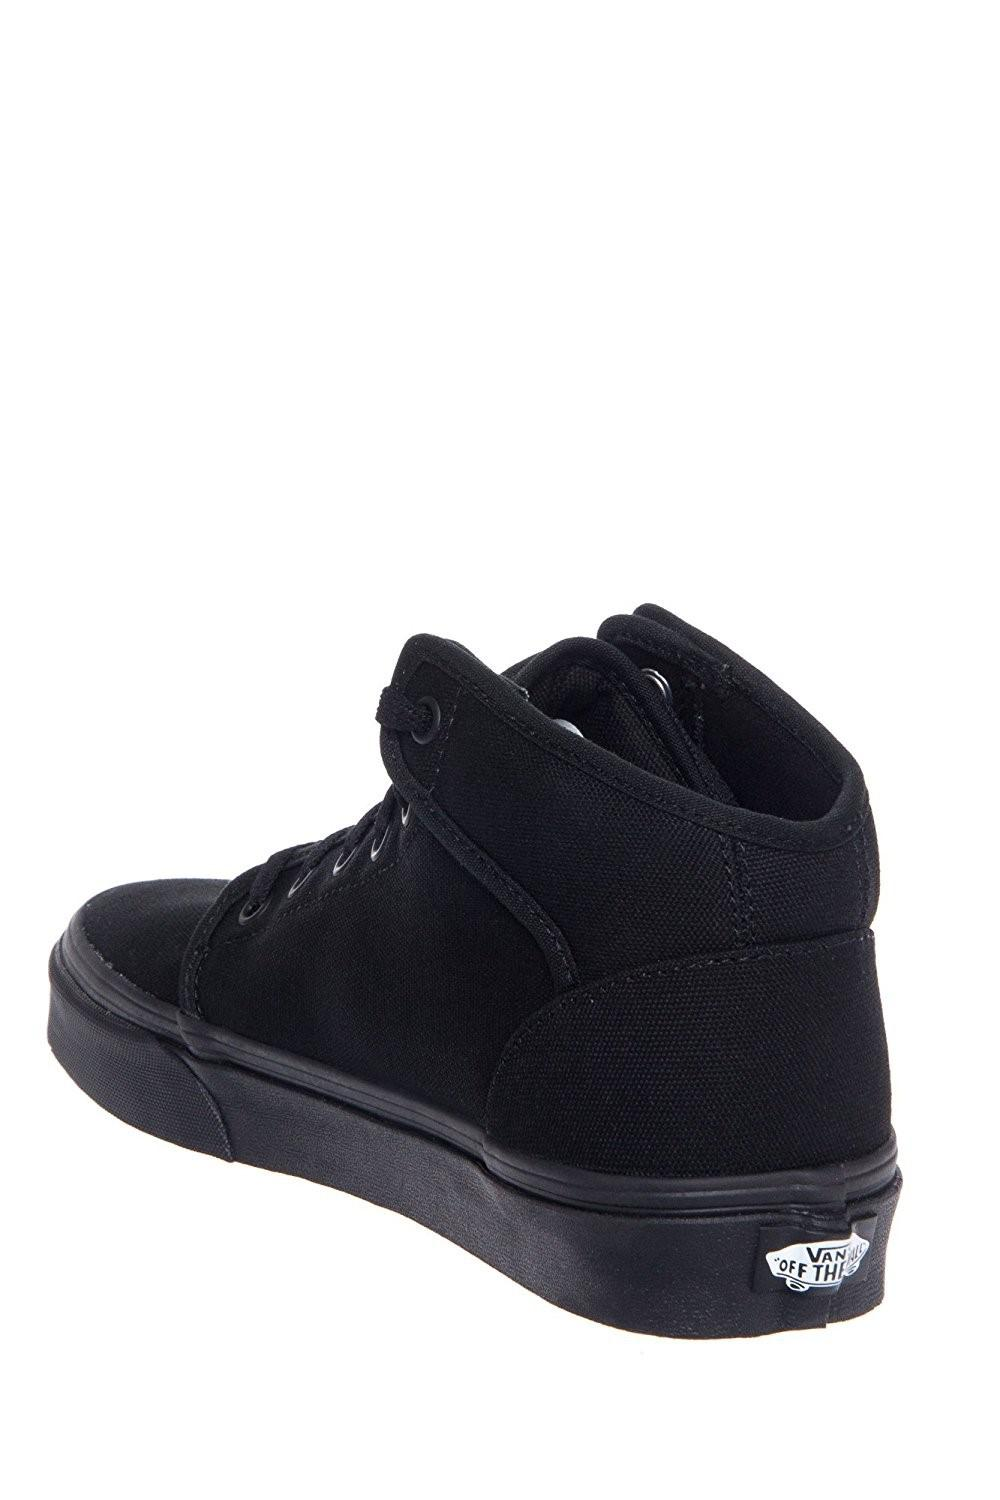 d02ebba3d9fb Lyst - Vans Mens 106 Mid Low Top Lace Up Fashion Sneaker in Black ...